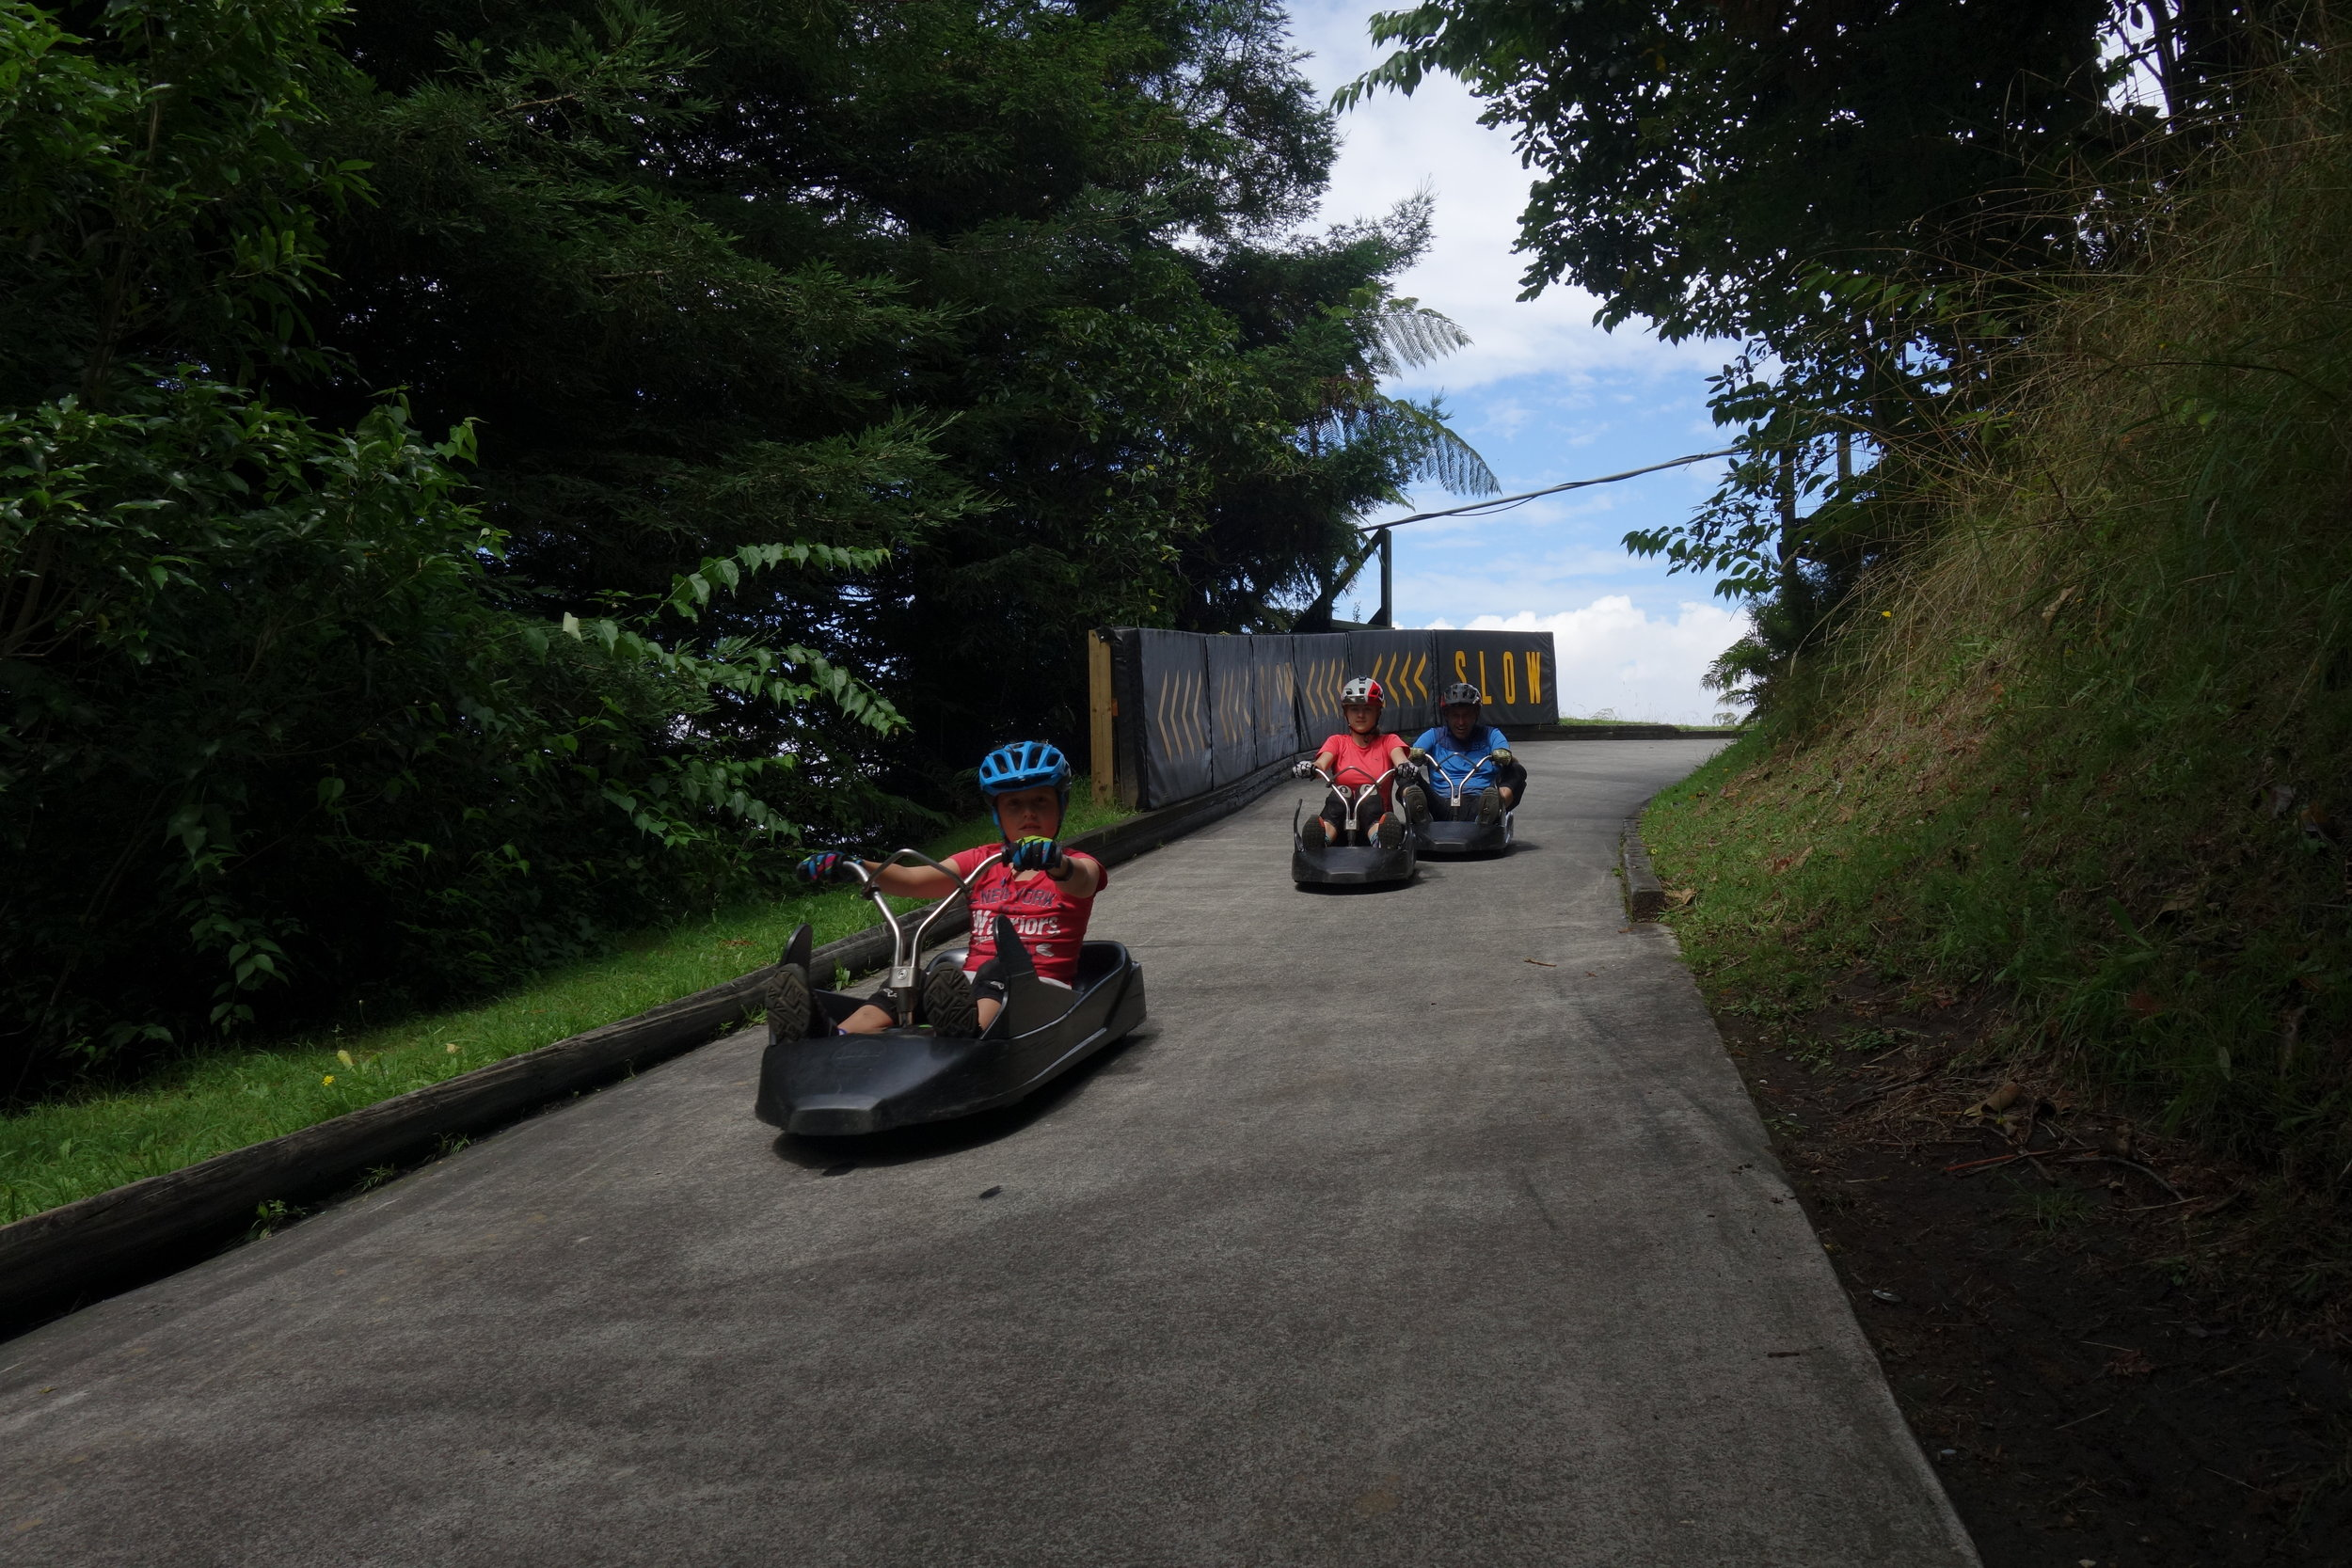 I thought the luge runs would be a little tame. SO MUCH FUN and a little scary...OK..very scary especially with visions of a cheese grated daughter in the local hospital.